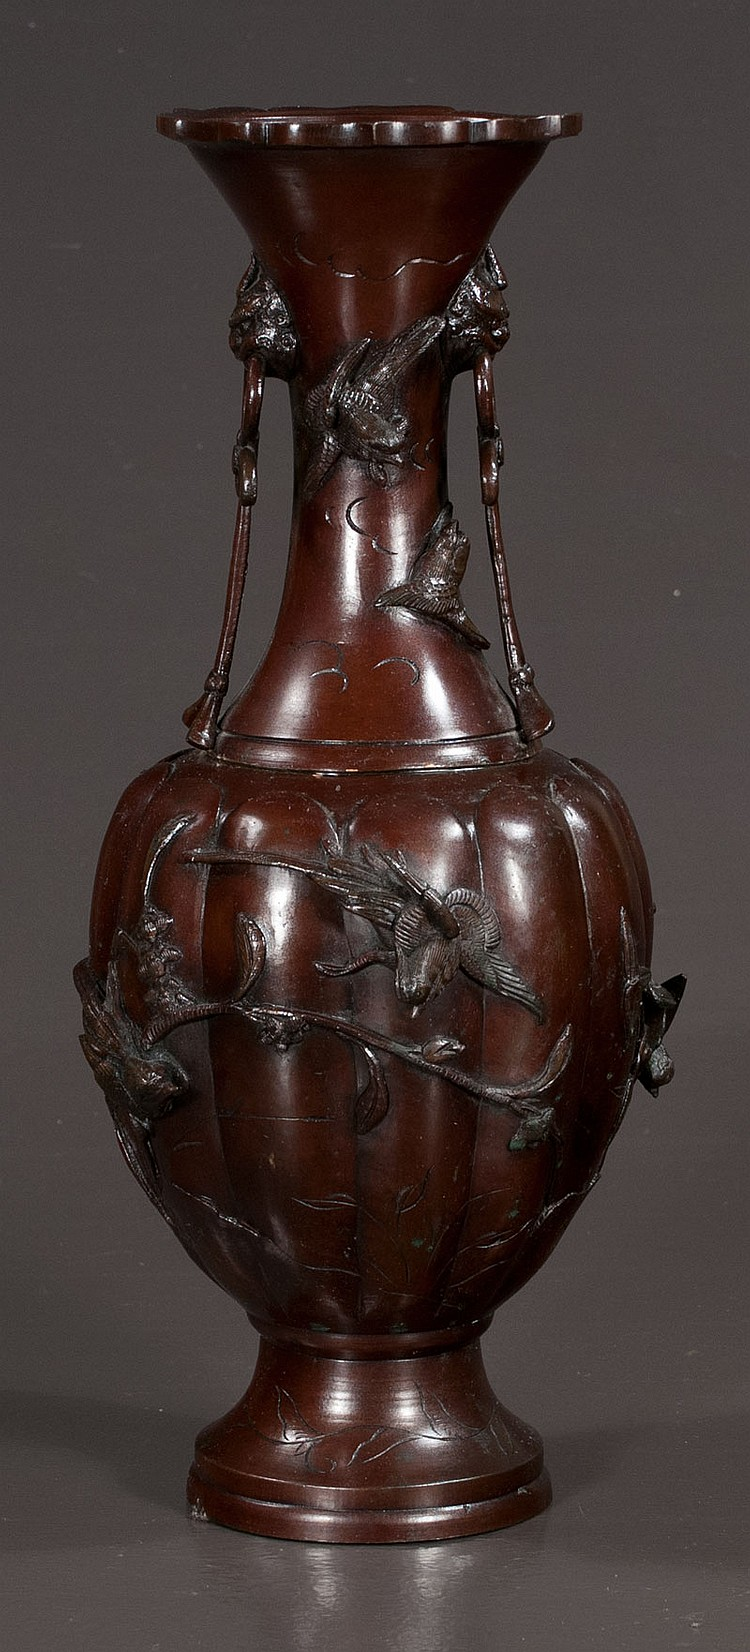 19th century Japanese bronze vase with bird decoration in relief, 16